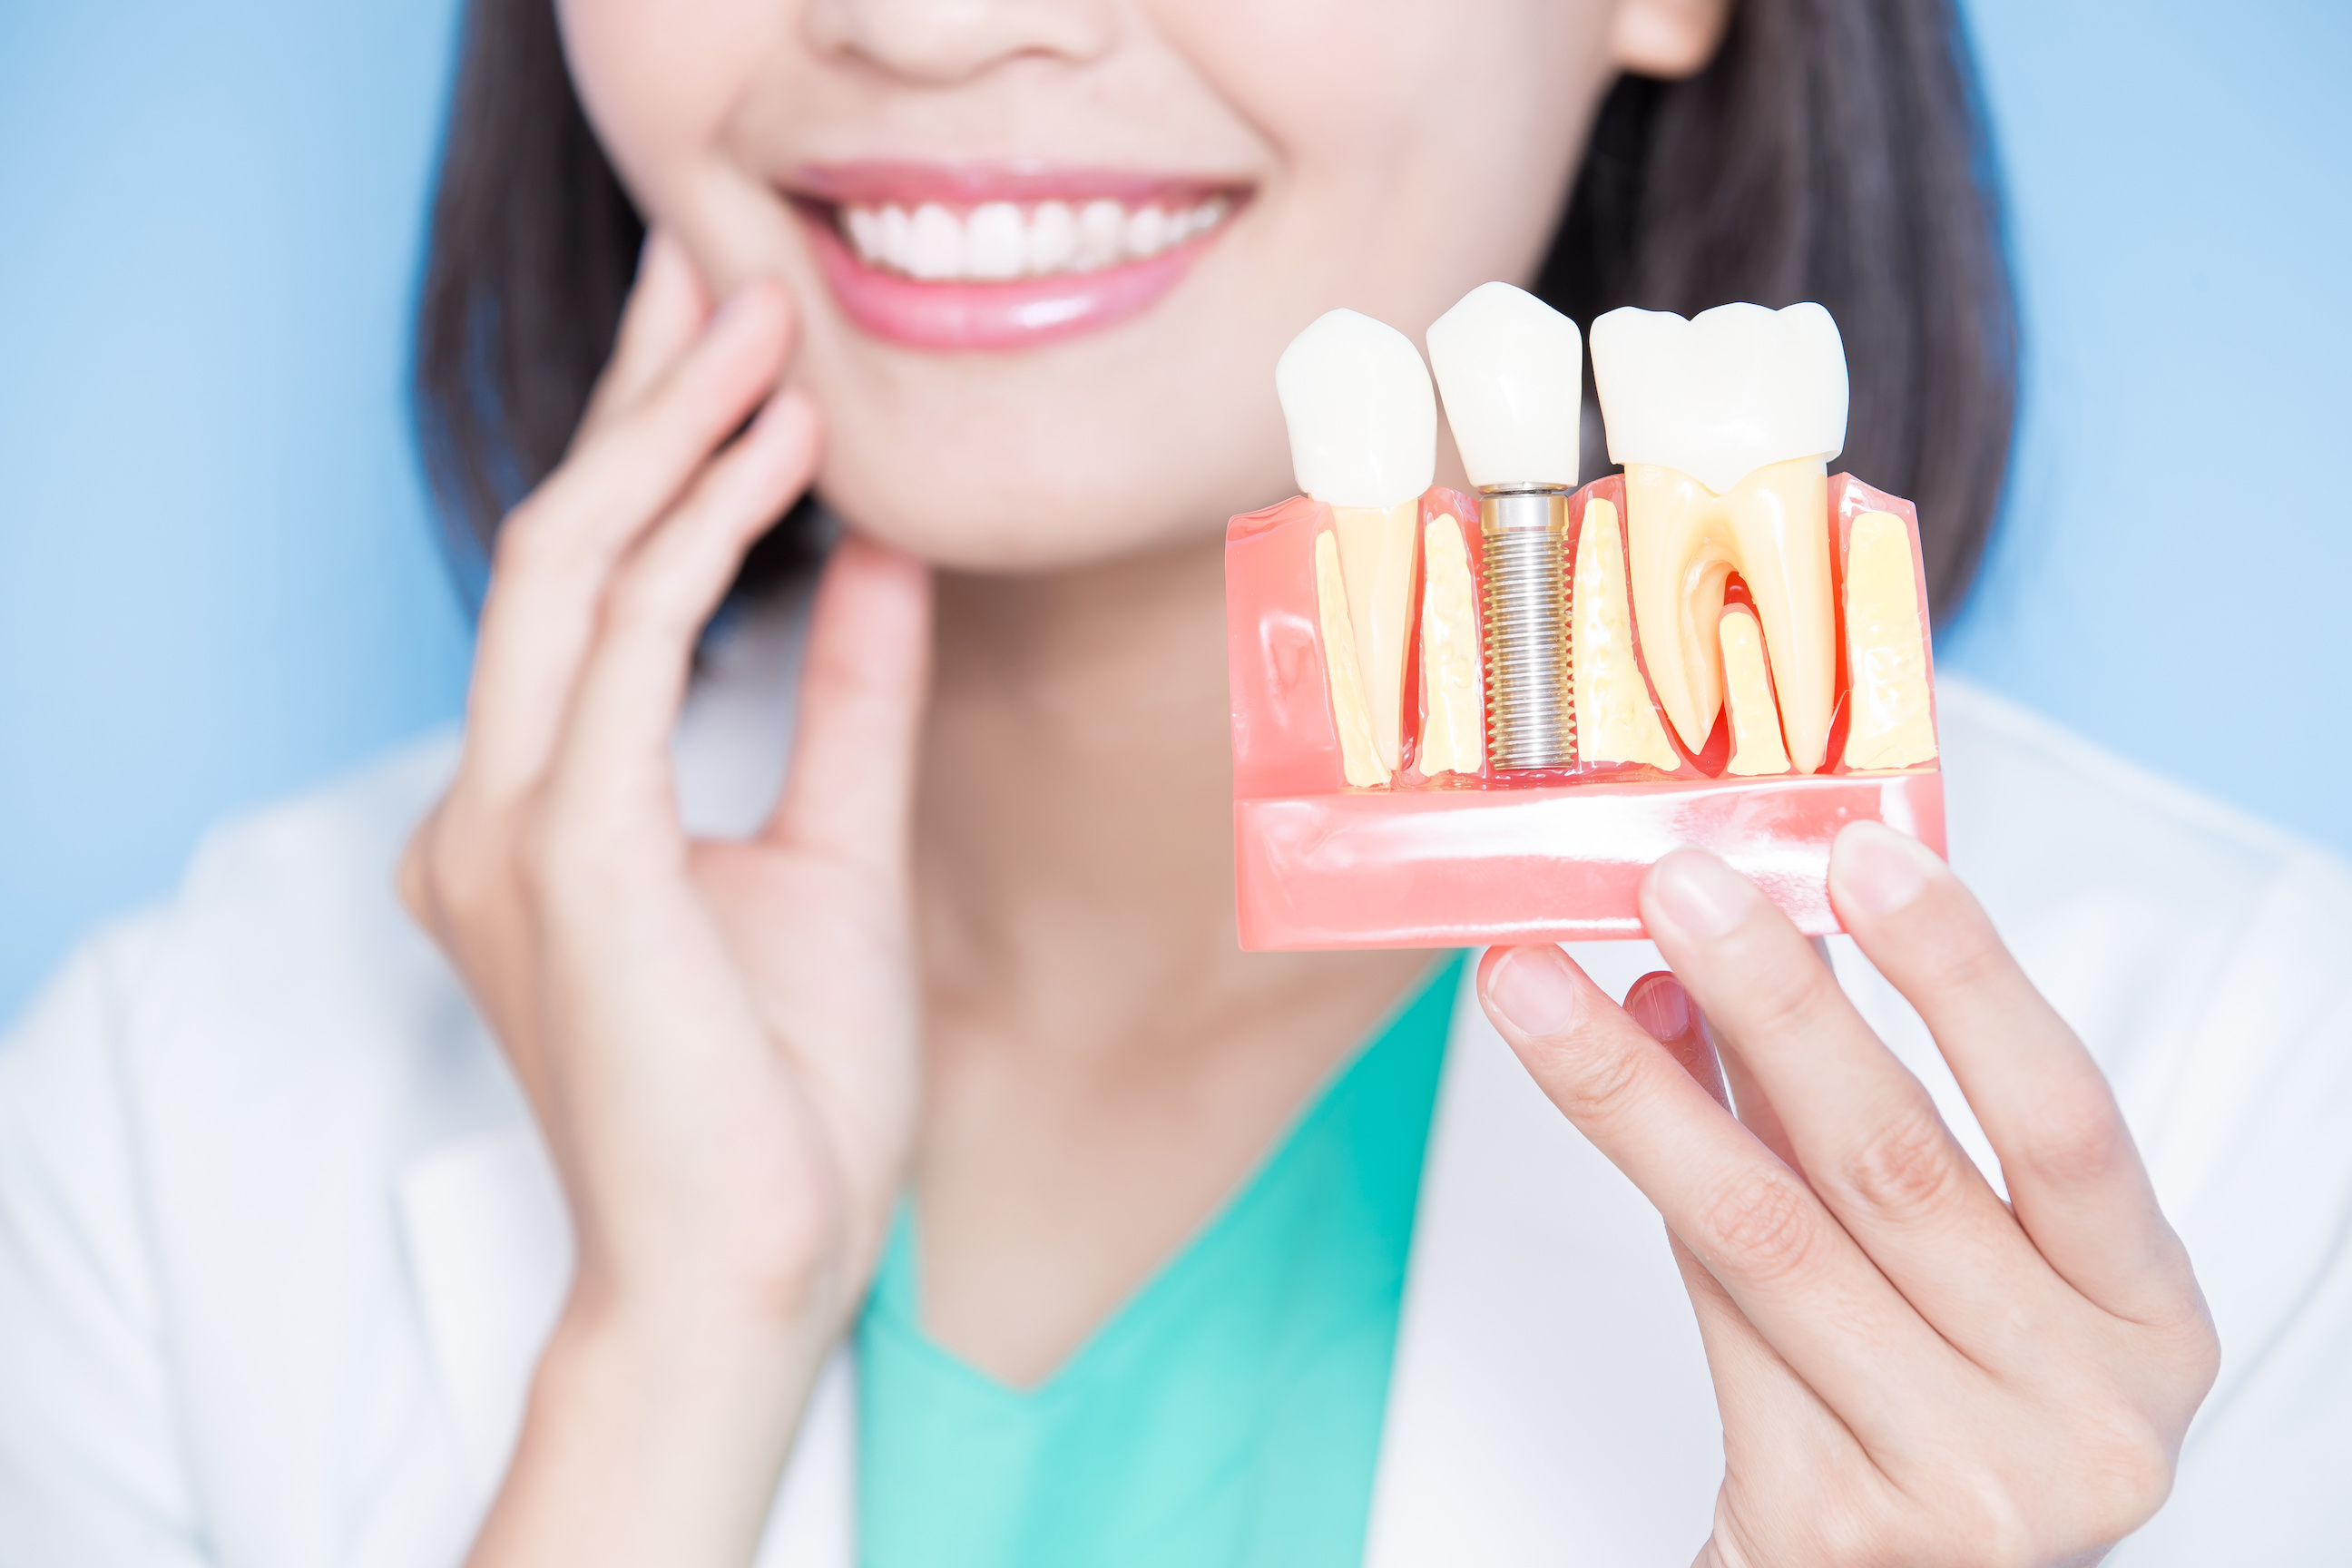 The Top 5 Benefits of Dental Implants for Your Oral Health